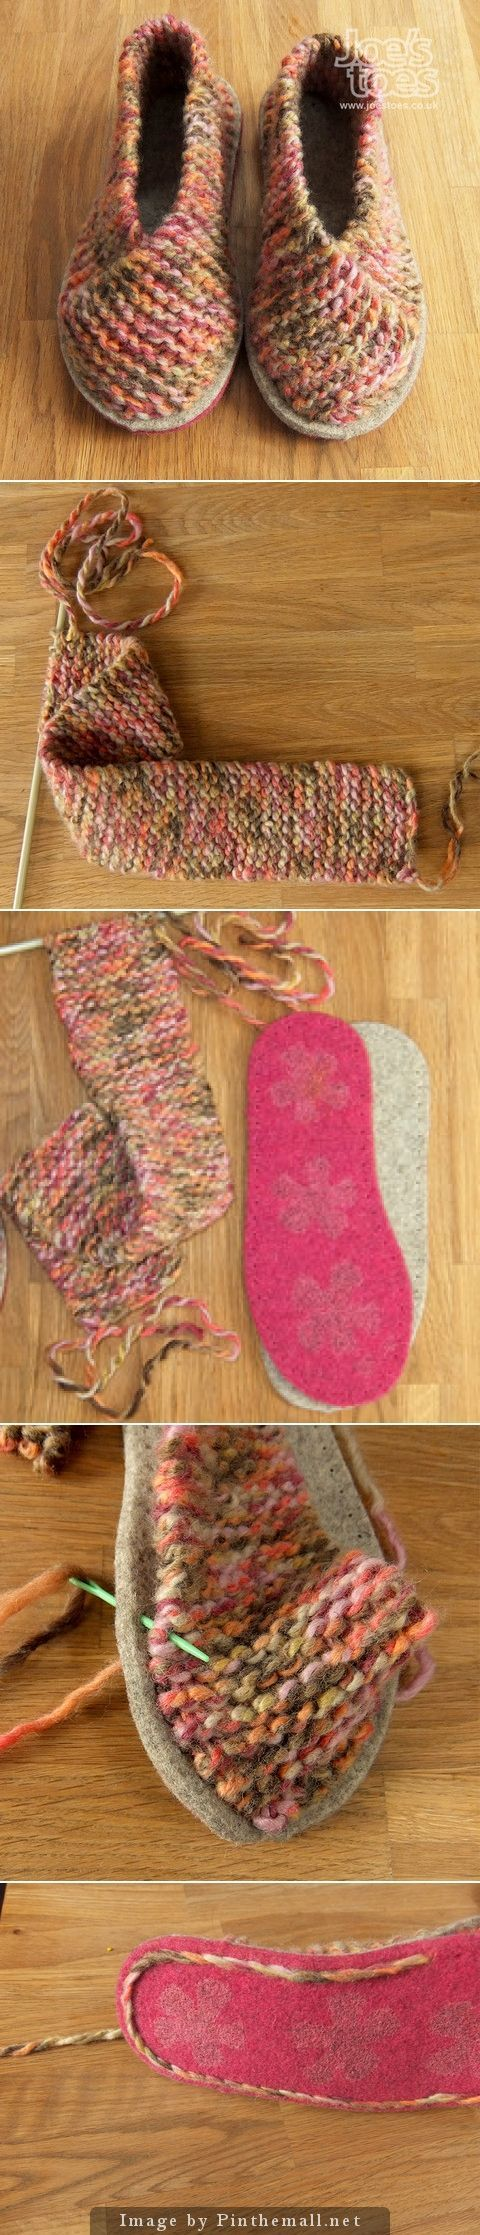 "#Knitting_Tutorial - ""How to make Knitted Garter Stitch Slippers. This looks fast, simple and fun!"" Enjoy from KnittingGuru ** http://www.pinterest.com/knittingguru/knitting-crochet-tutorials/:"